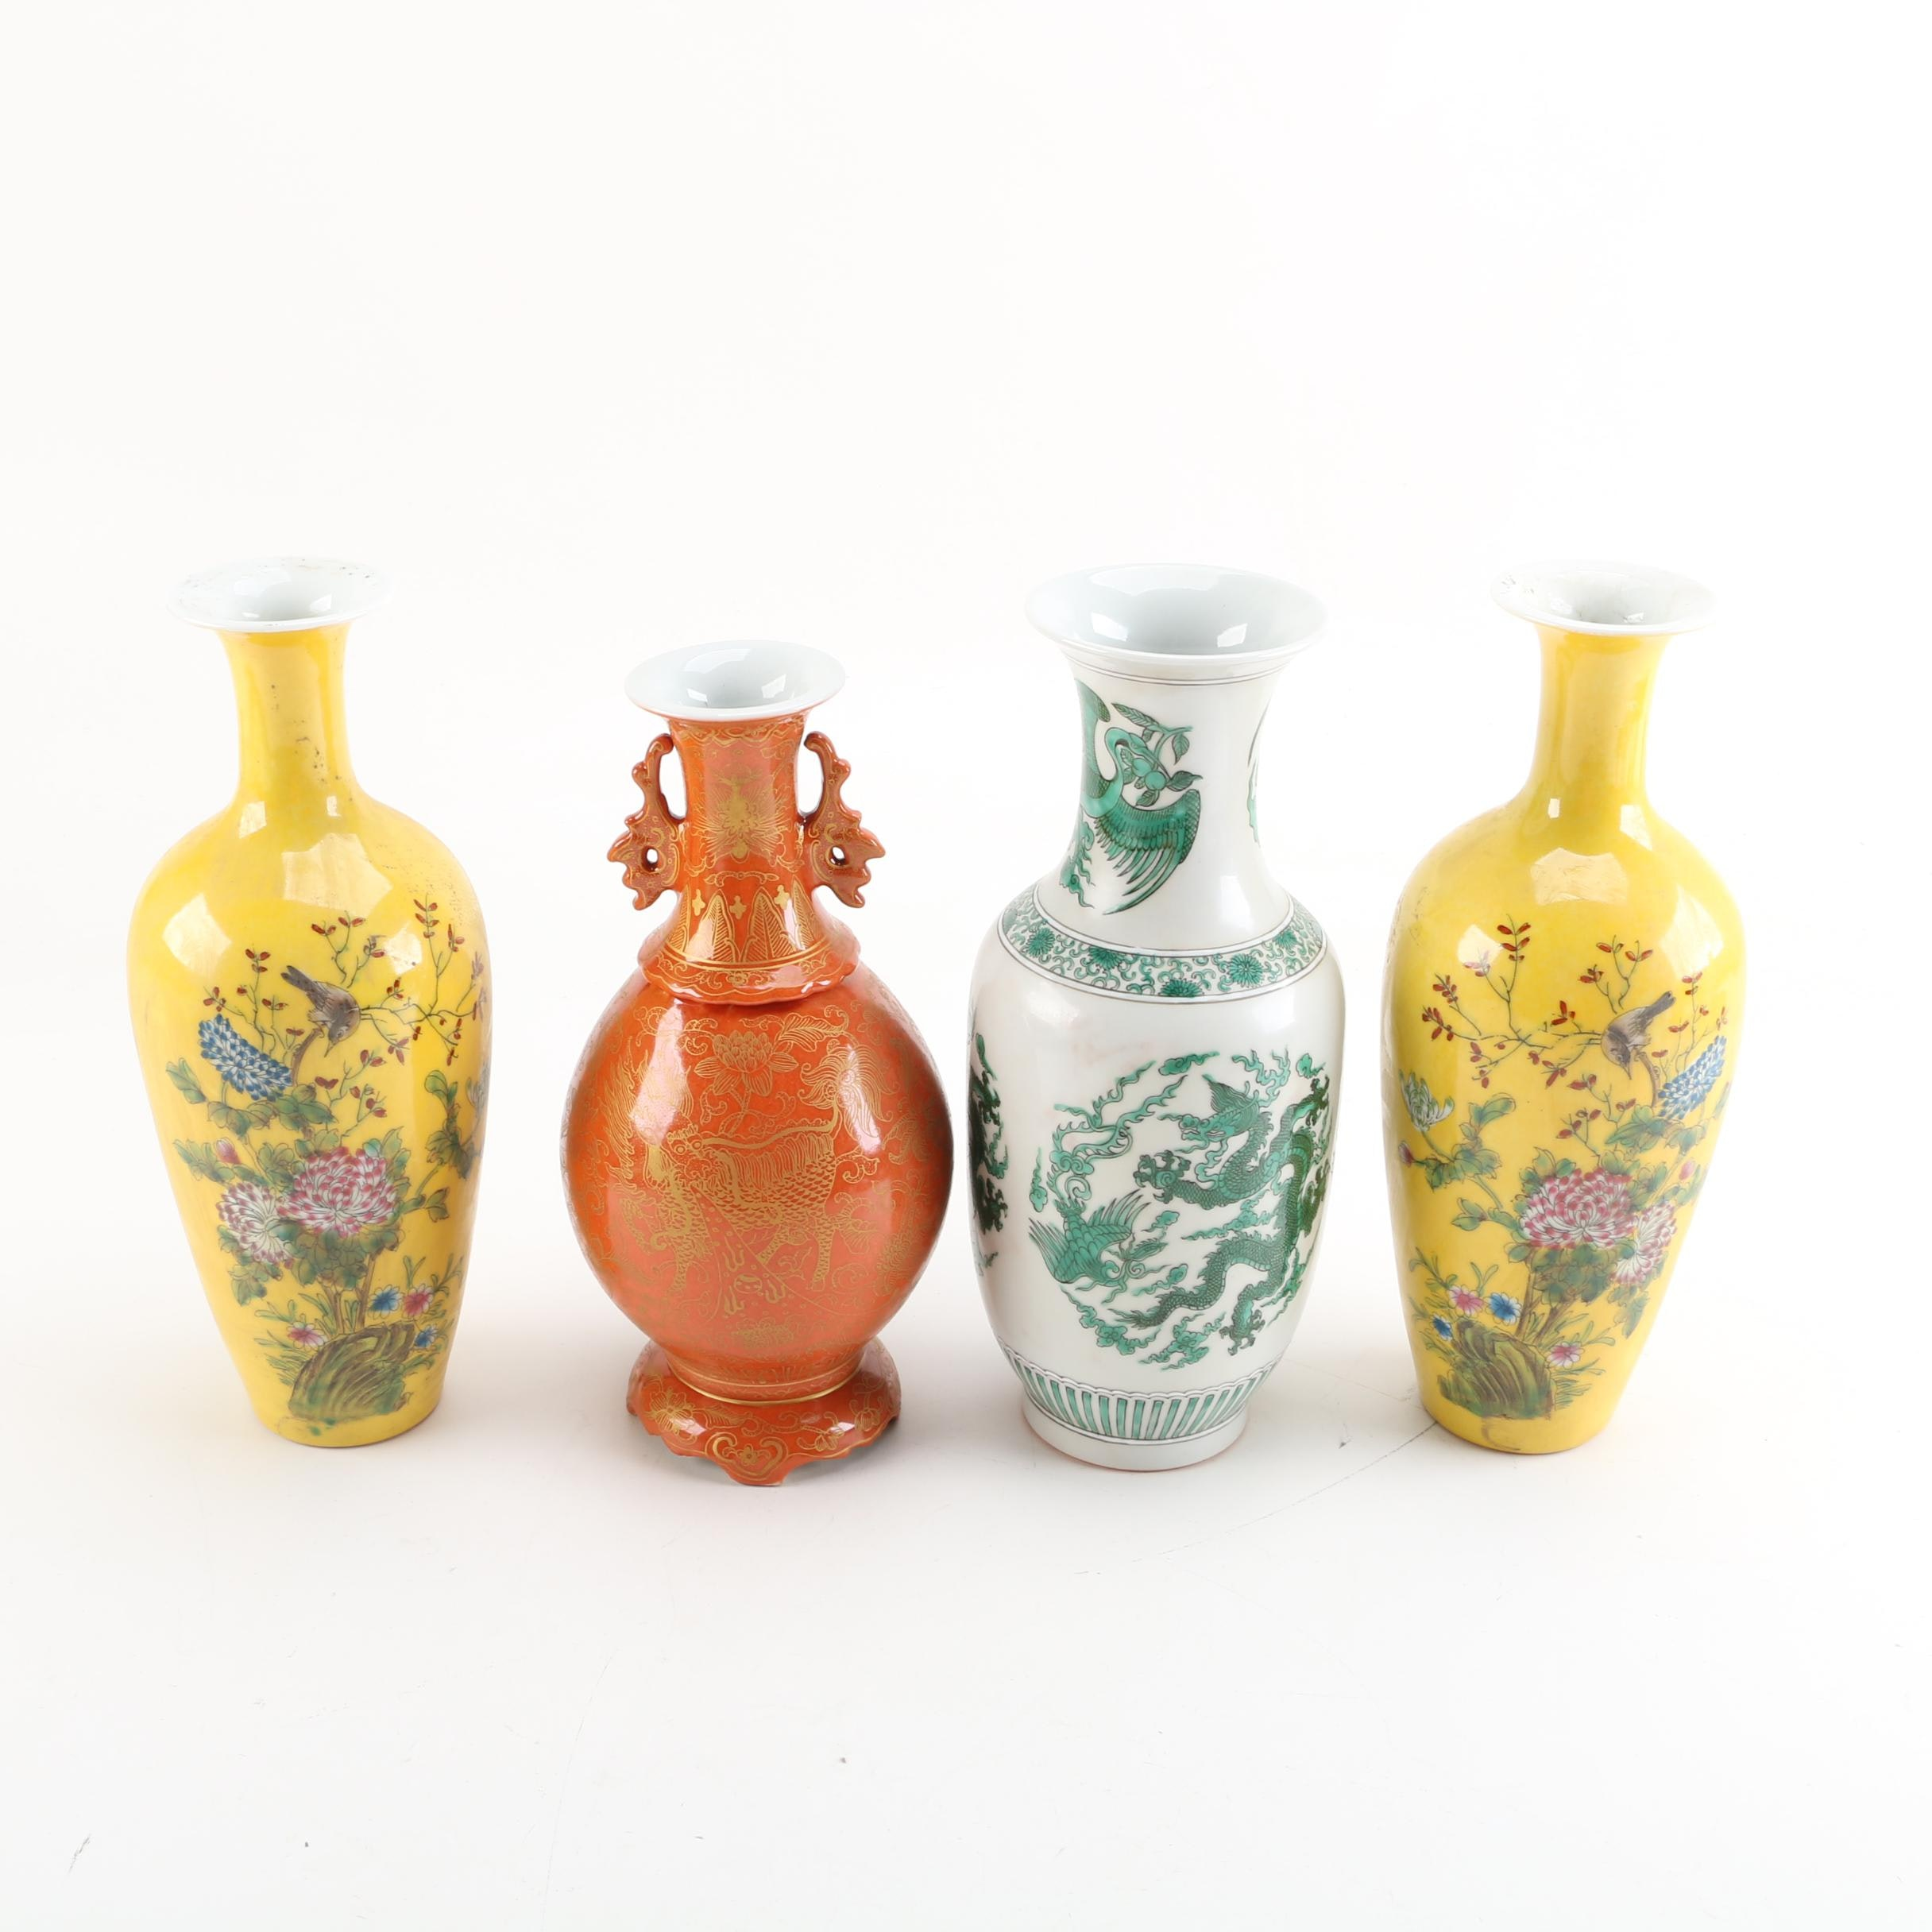 Contemporary Chinese Ceramic Vases with Floral and Dragon Designs